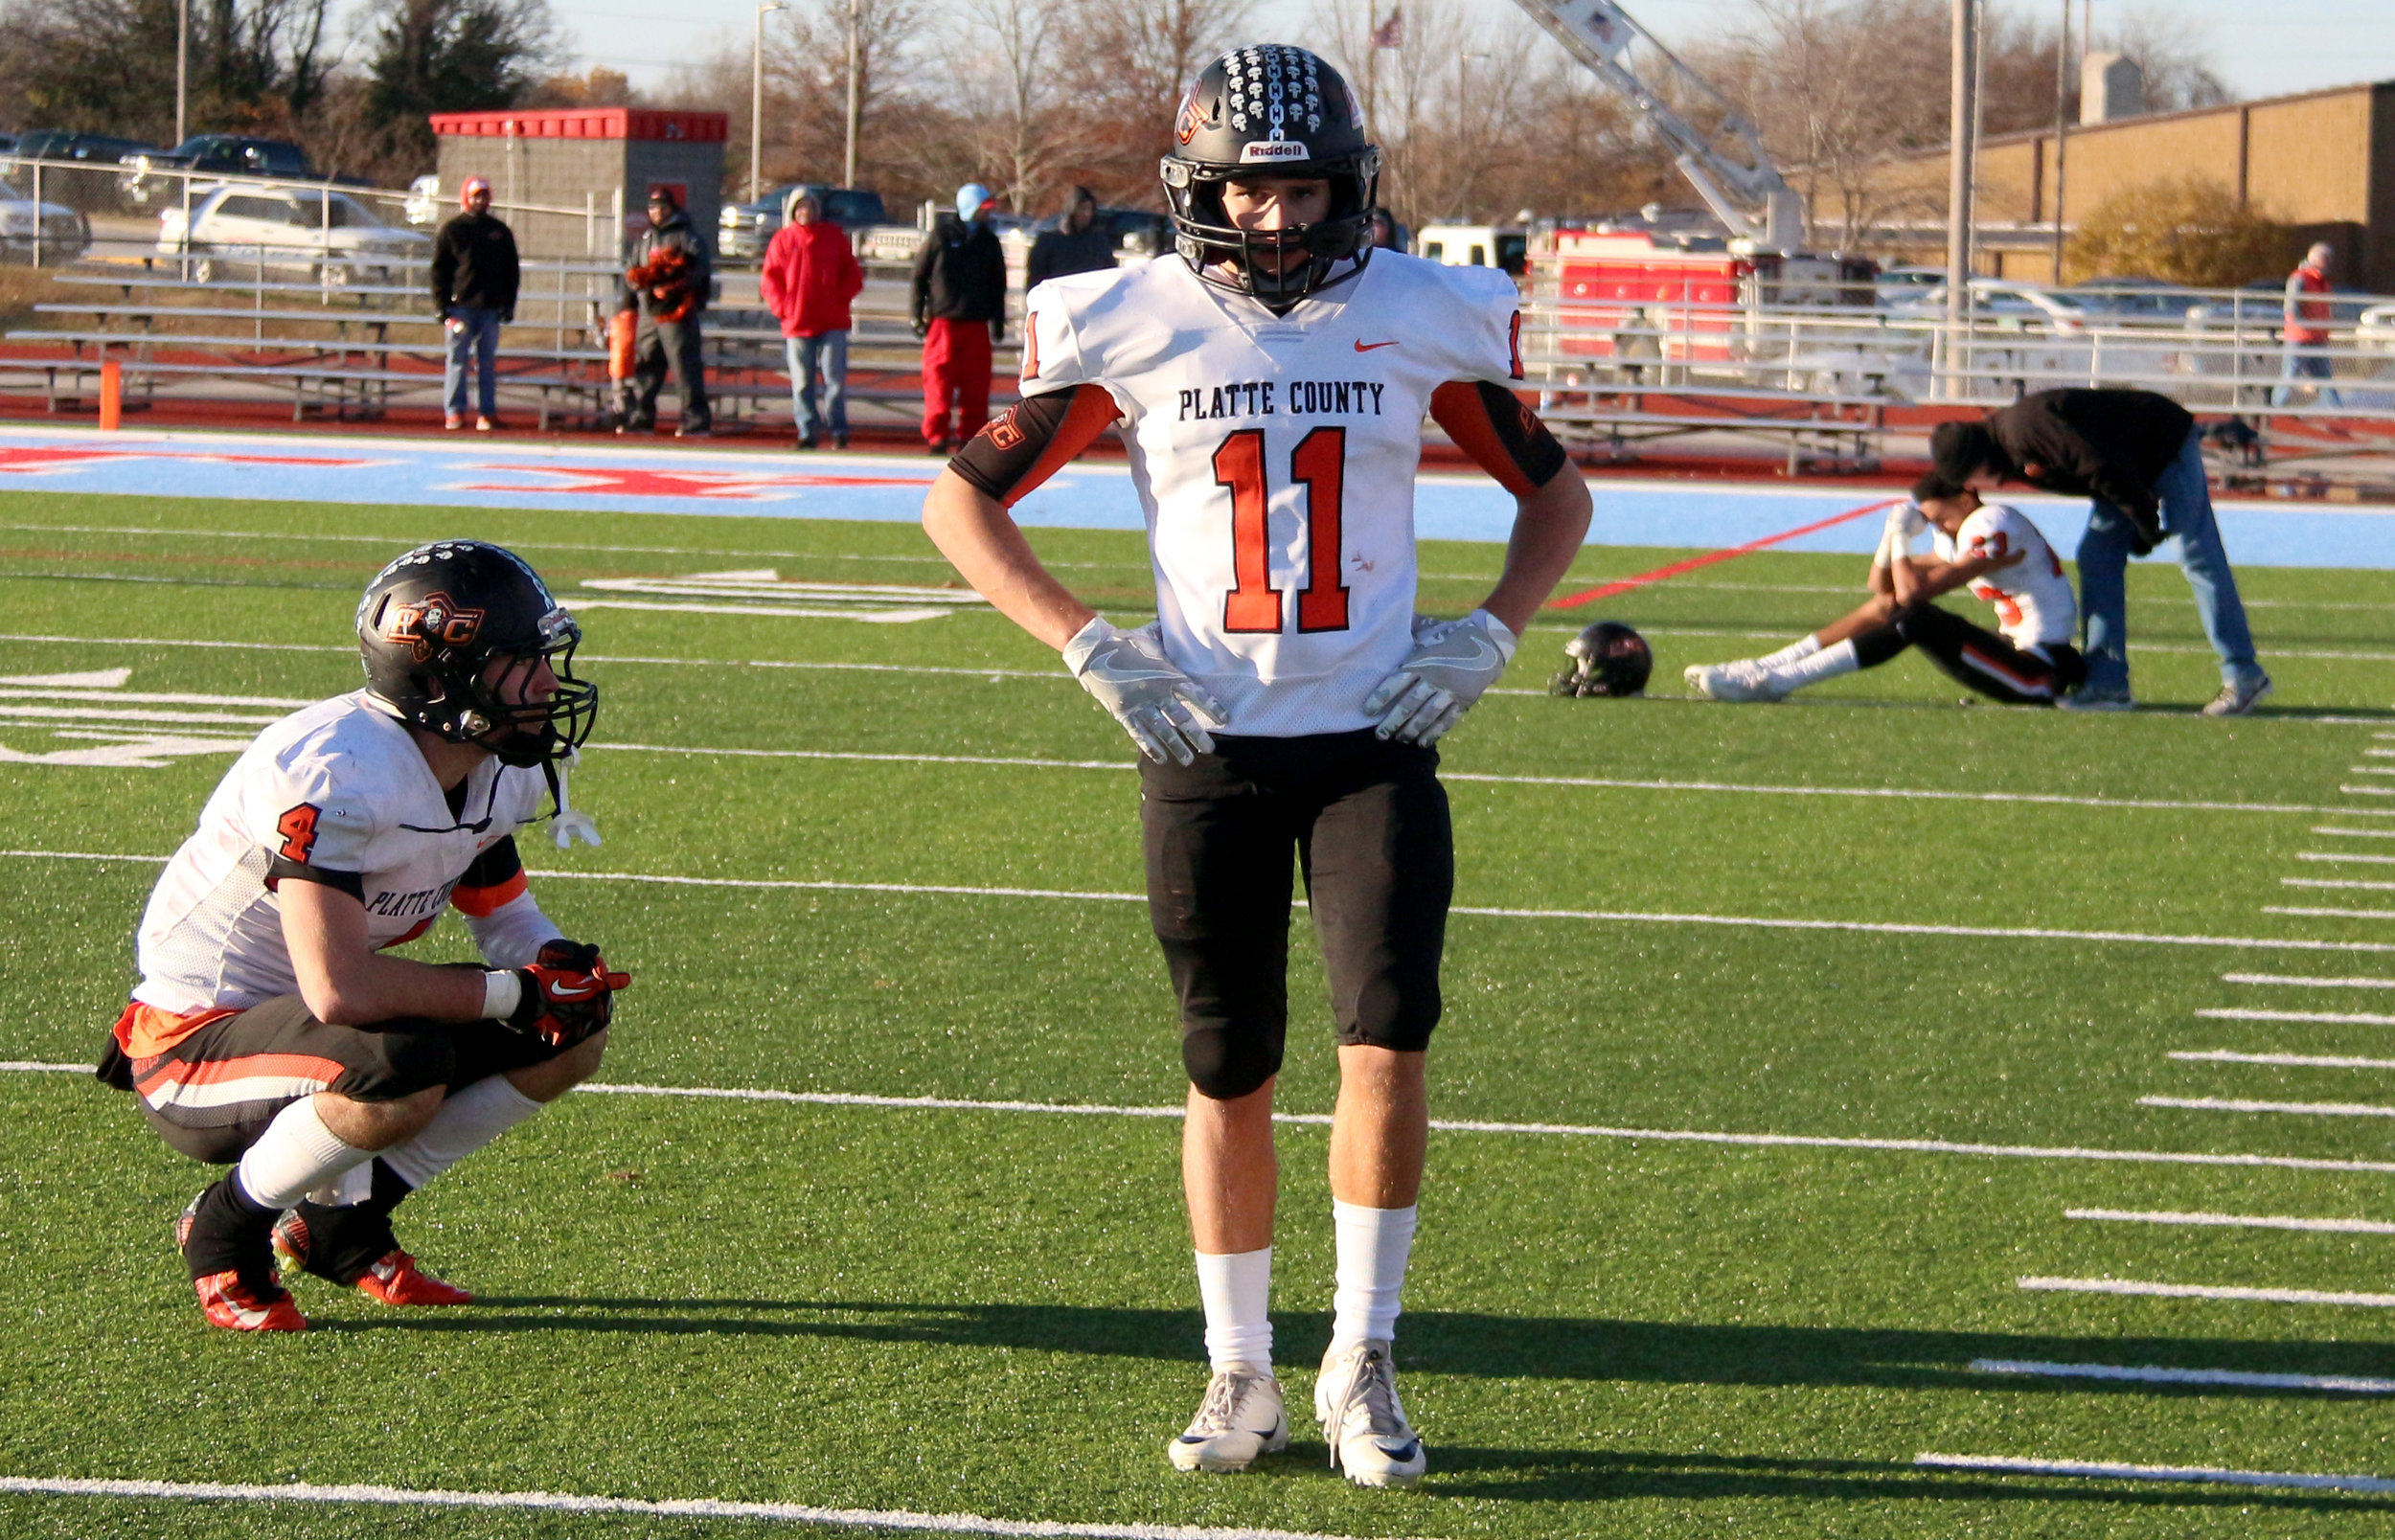 ROSS MARTIN/Citizen photo ABOVE: Platte County seniors Gavin Hardman (4), Devin Richardson (11) and John Watts (right) react after the final play of a 21-18 loss to Webb City in a Class 4 semifinal Saturday, Nov. 18 at Cardinal Stadium in Webb City, Mo.